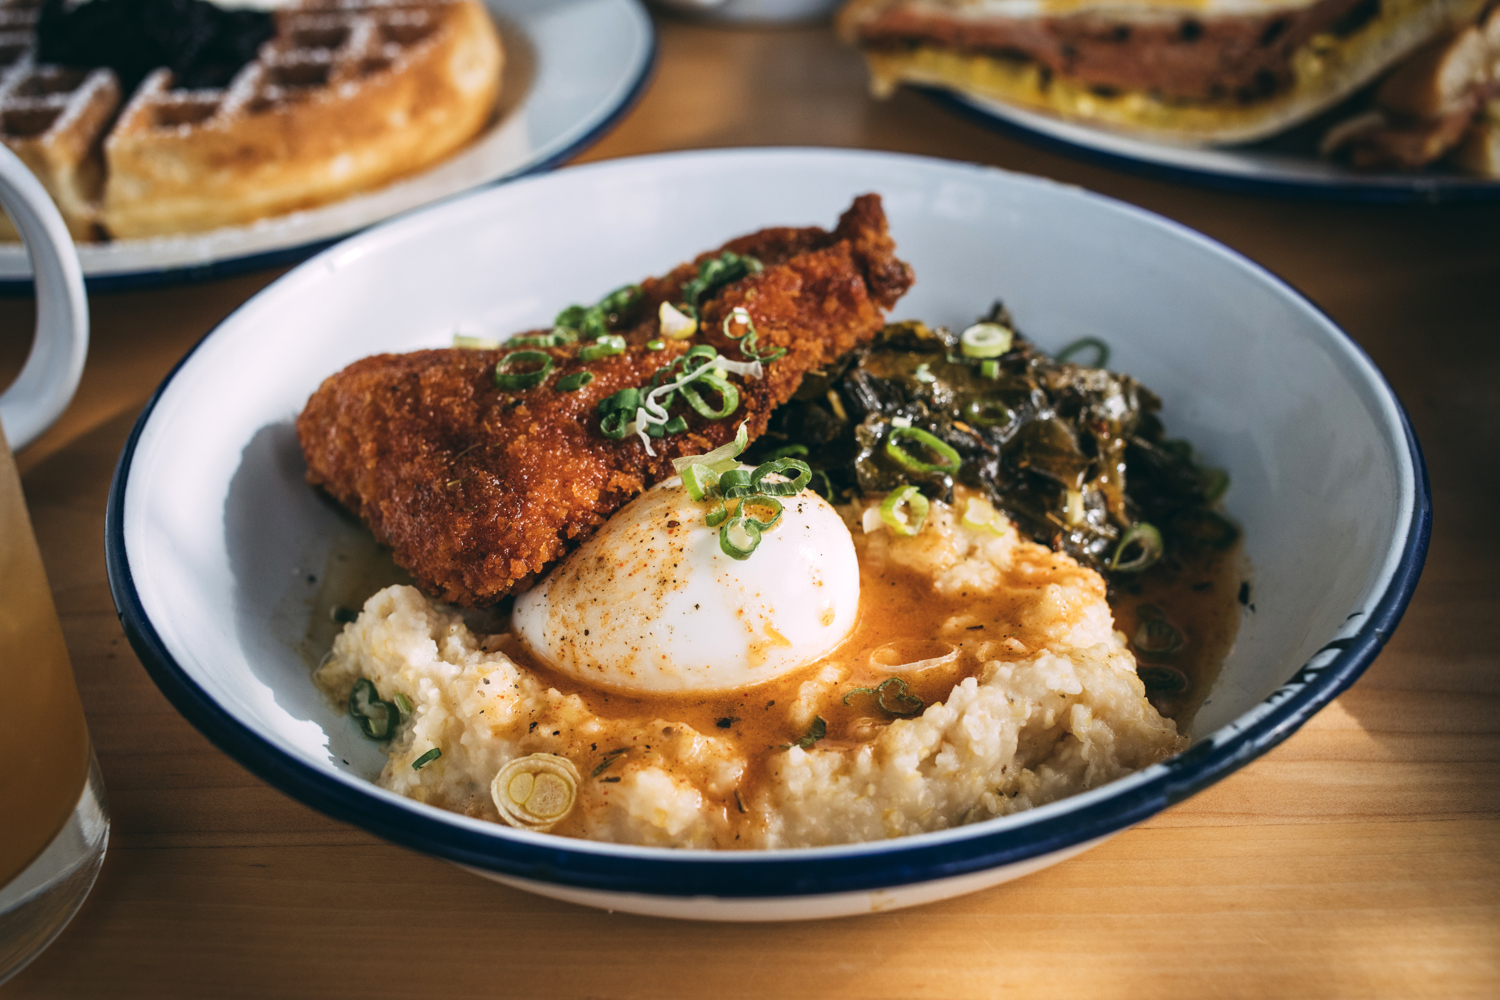 Parson's Chicken & Fish - Top Brunch Restaurants Chicago No-Reservation NextME Waitlist App